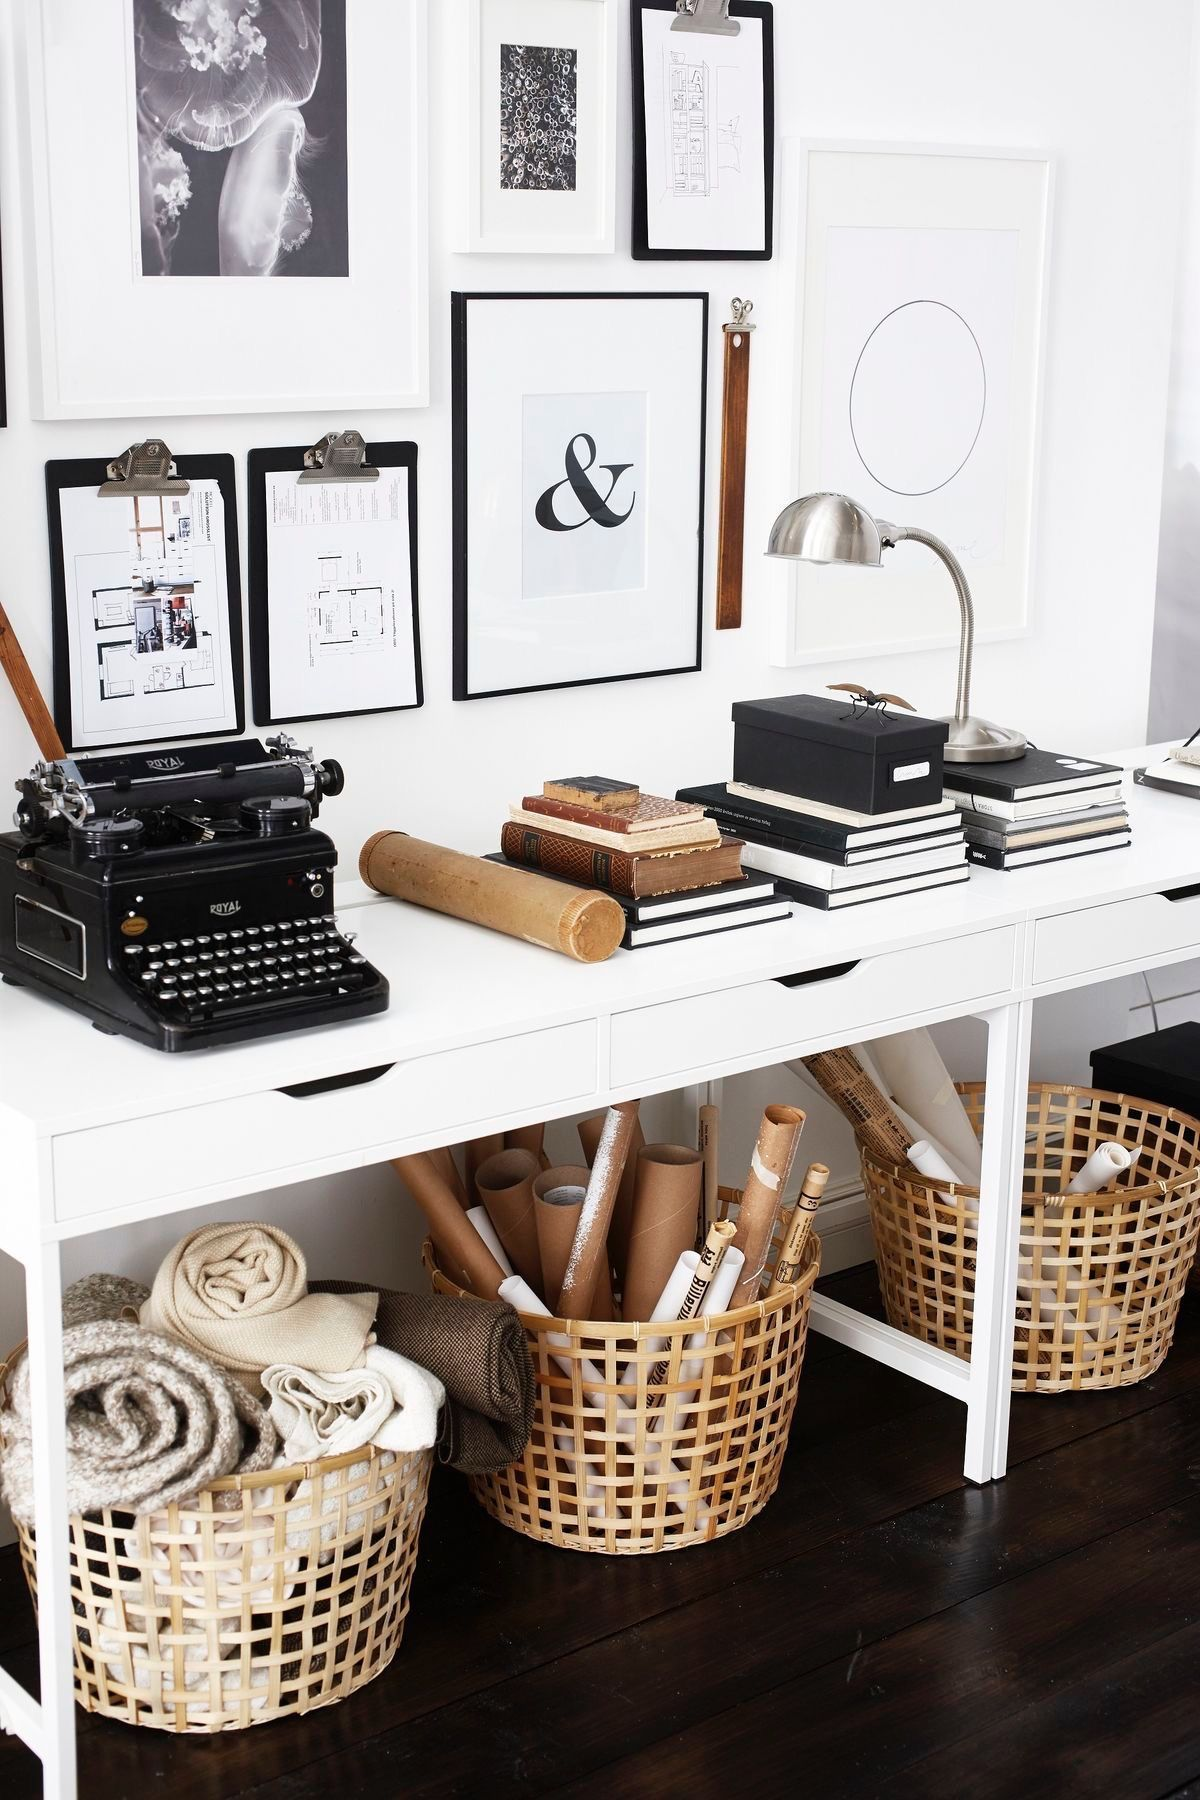 Home office design decor ideas for 2018 including, office decor ...